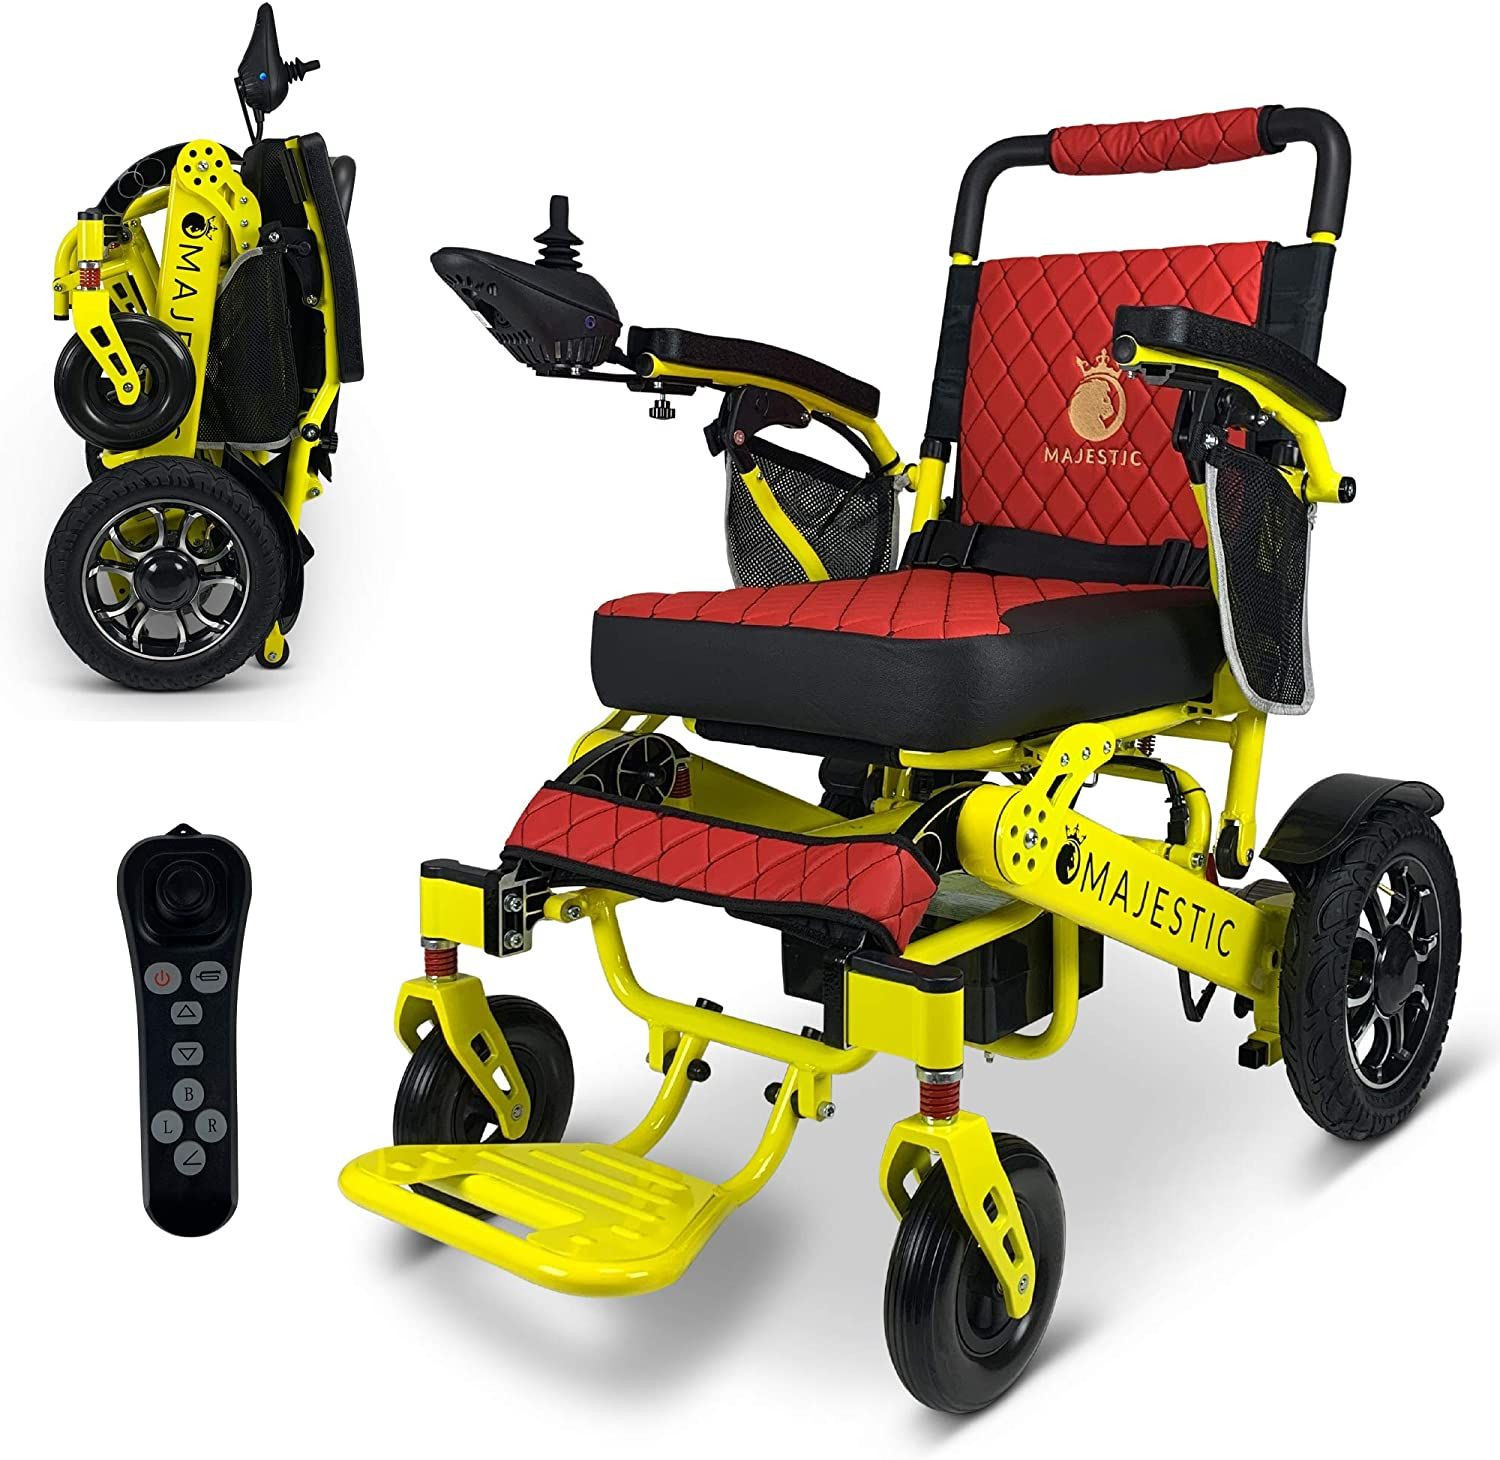 2020 Limited Edition Remote Control Foldable Electric Wheelchair Mobility Aid Lightweight Motorized Power Wheelchairs